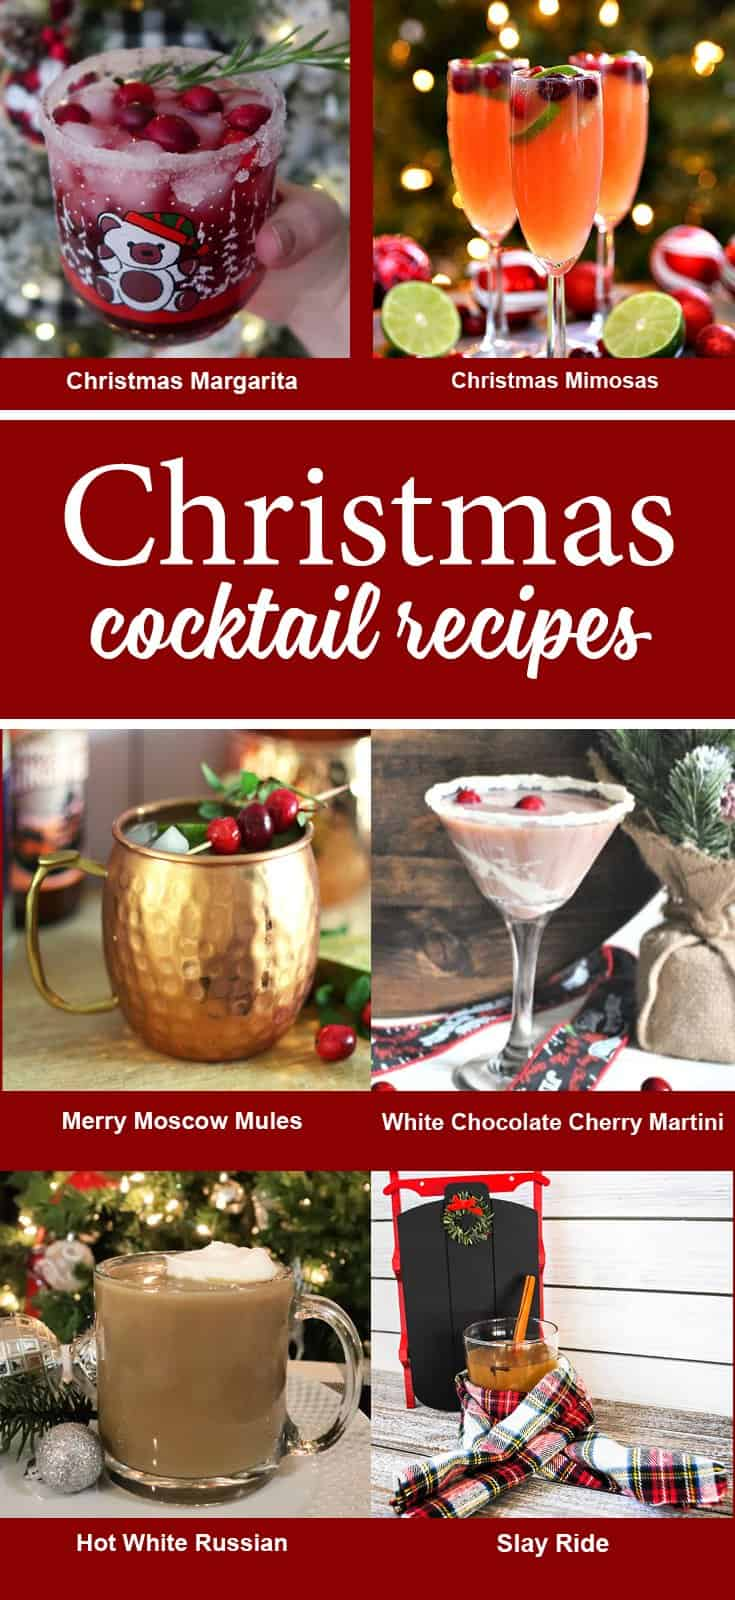 6 Christmas Cocktail recipes